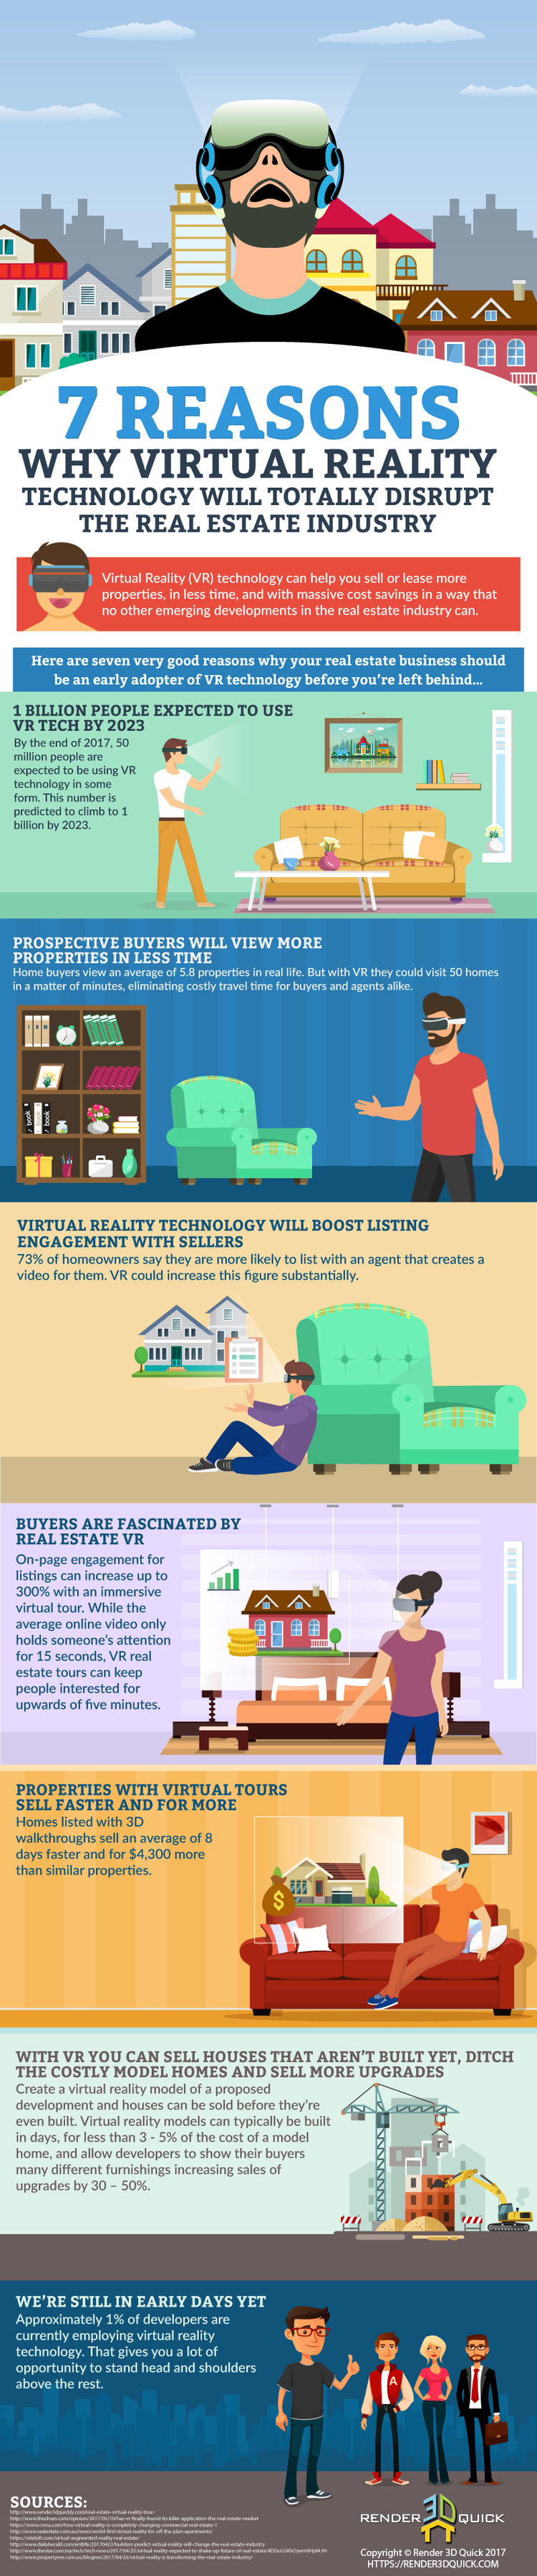 7 Reasons Why Virtual Reality Will Totally Disrupt the Real Estate Industry - Render3DQuick.jpg